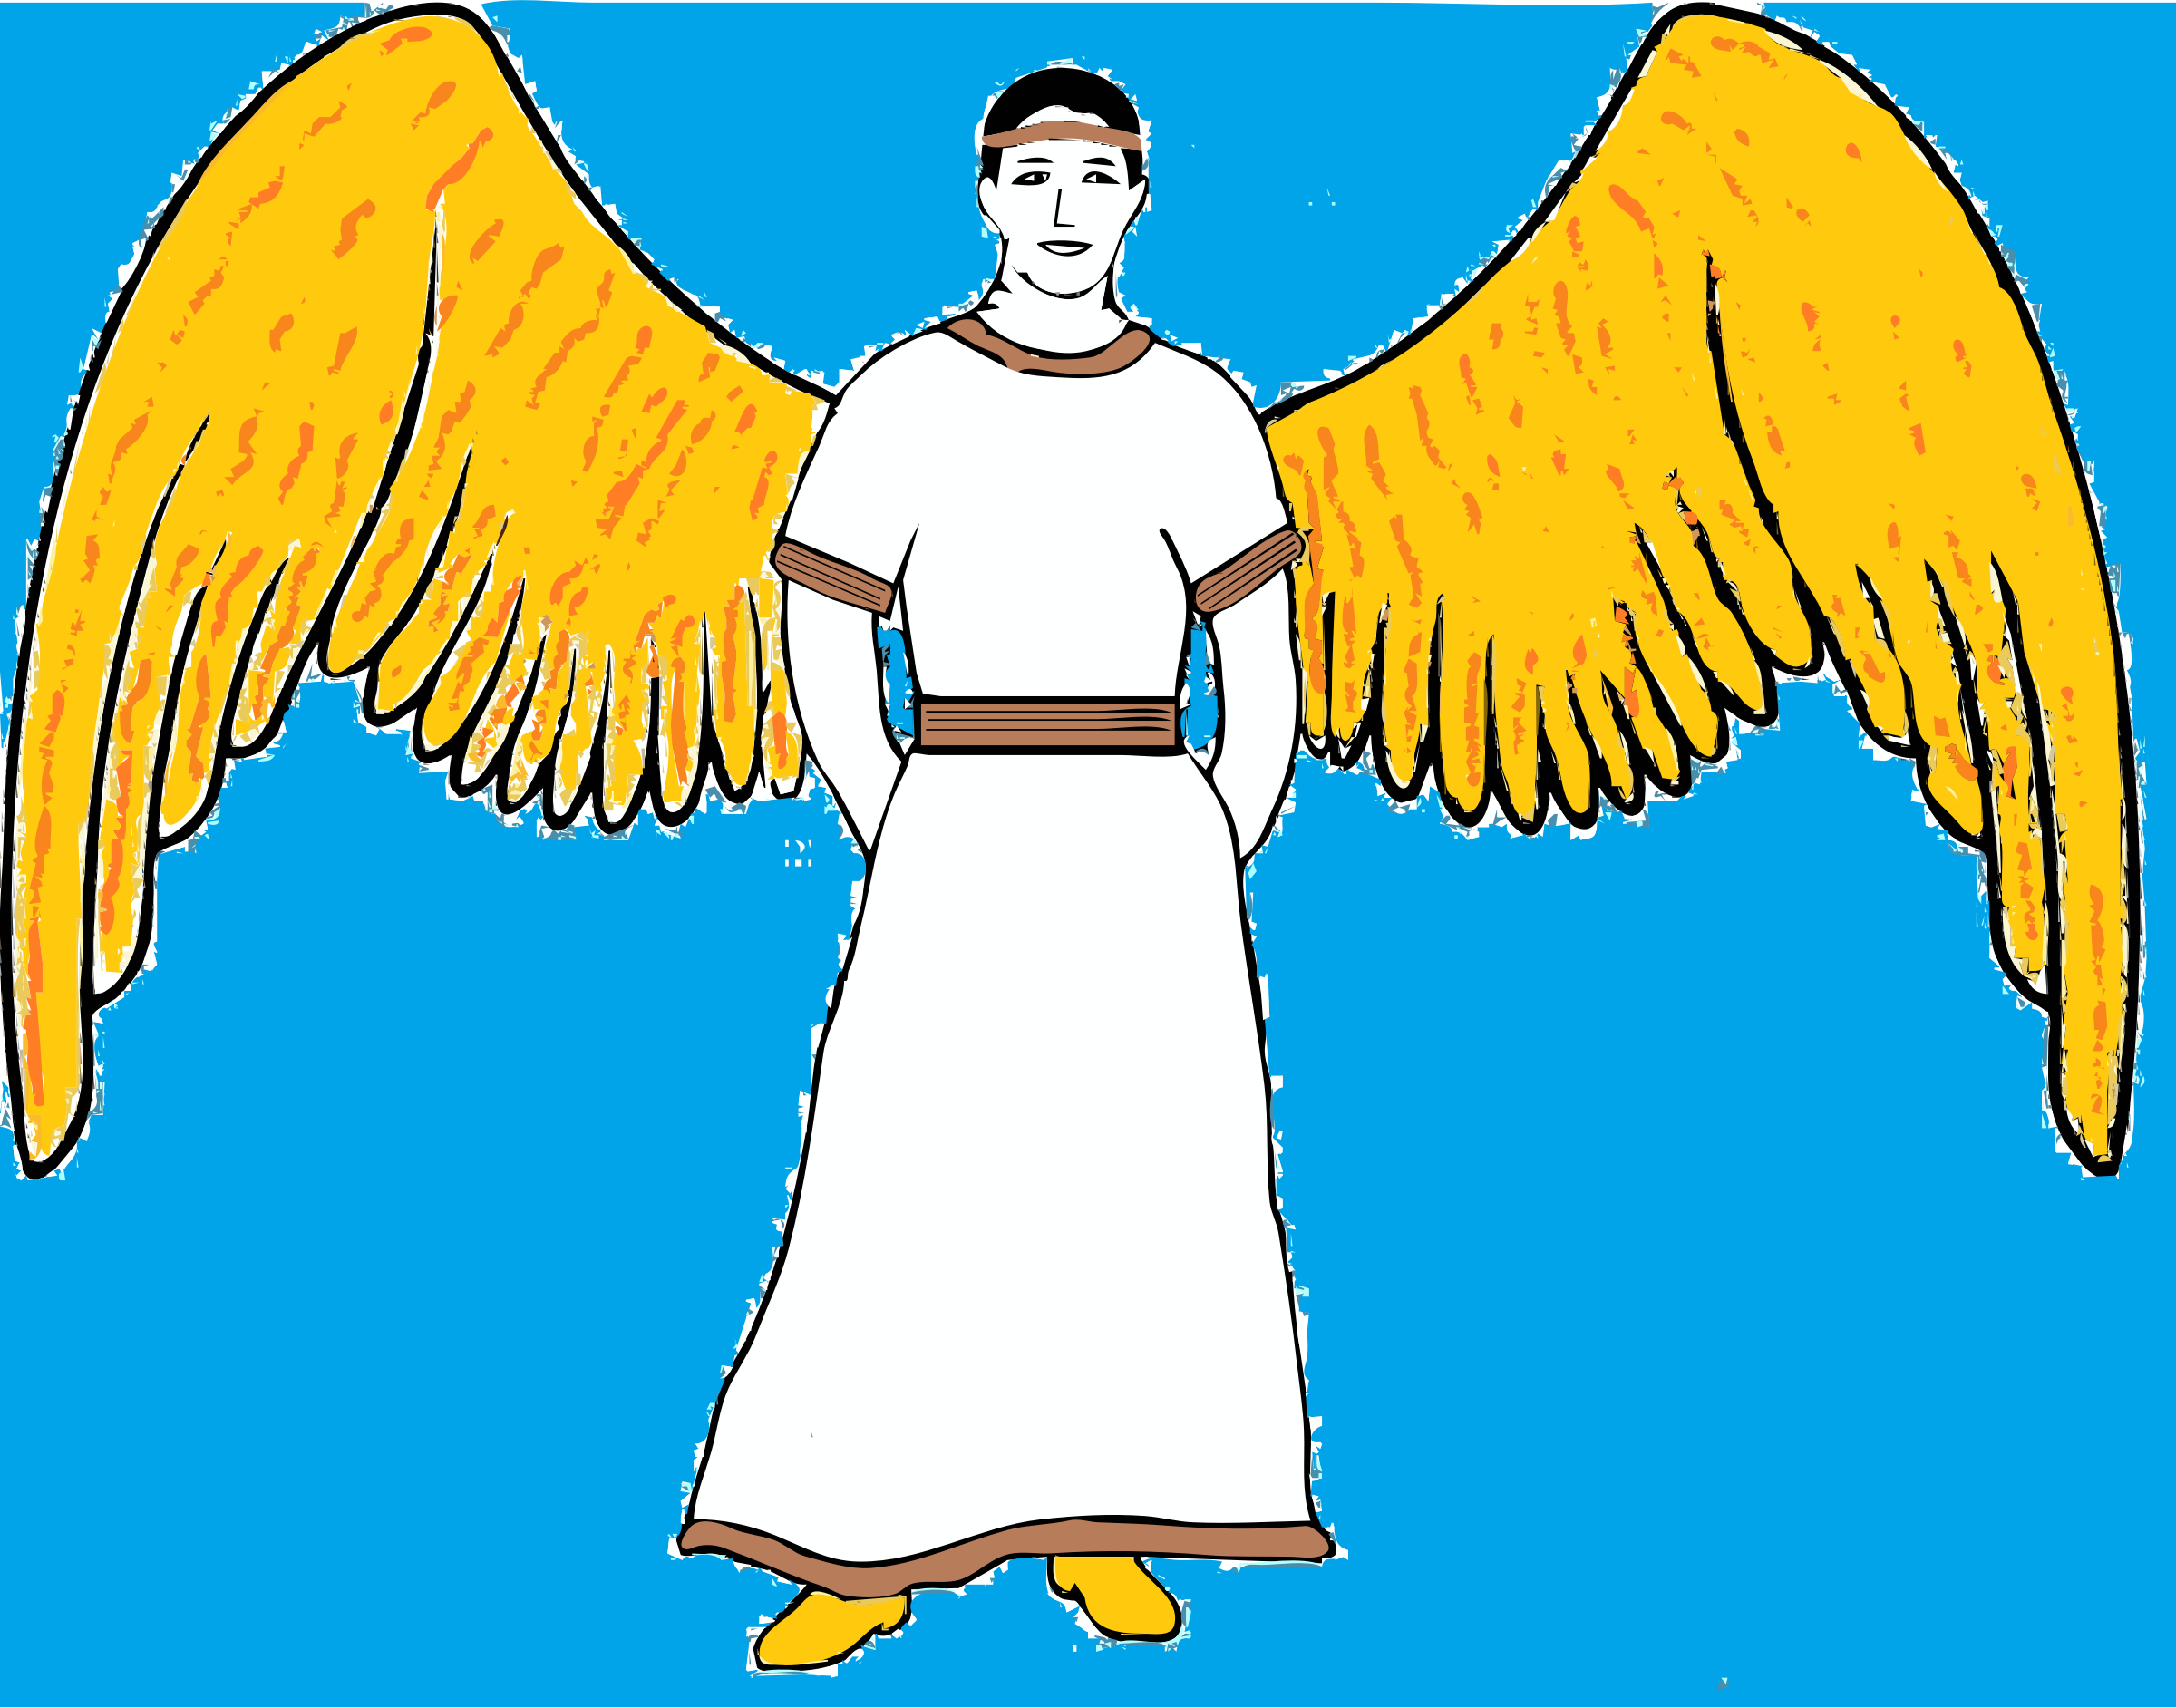 Daedalus clipart vector royalty free stock Re : Angel 1 by @Jasmine2016, Angel with wings, Icarus, Daedalus ... vector royalty free stock